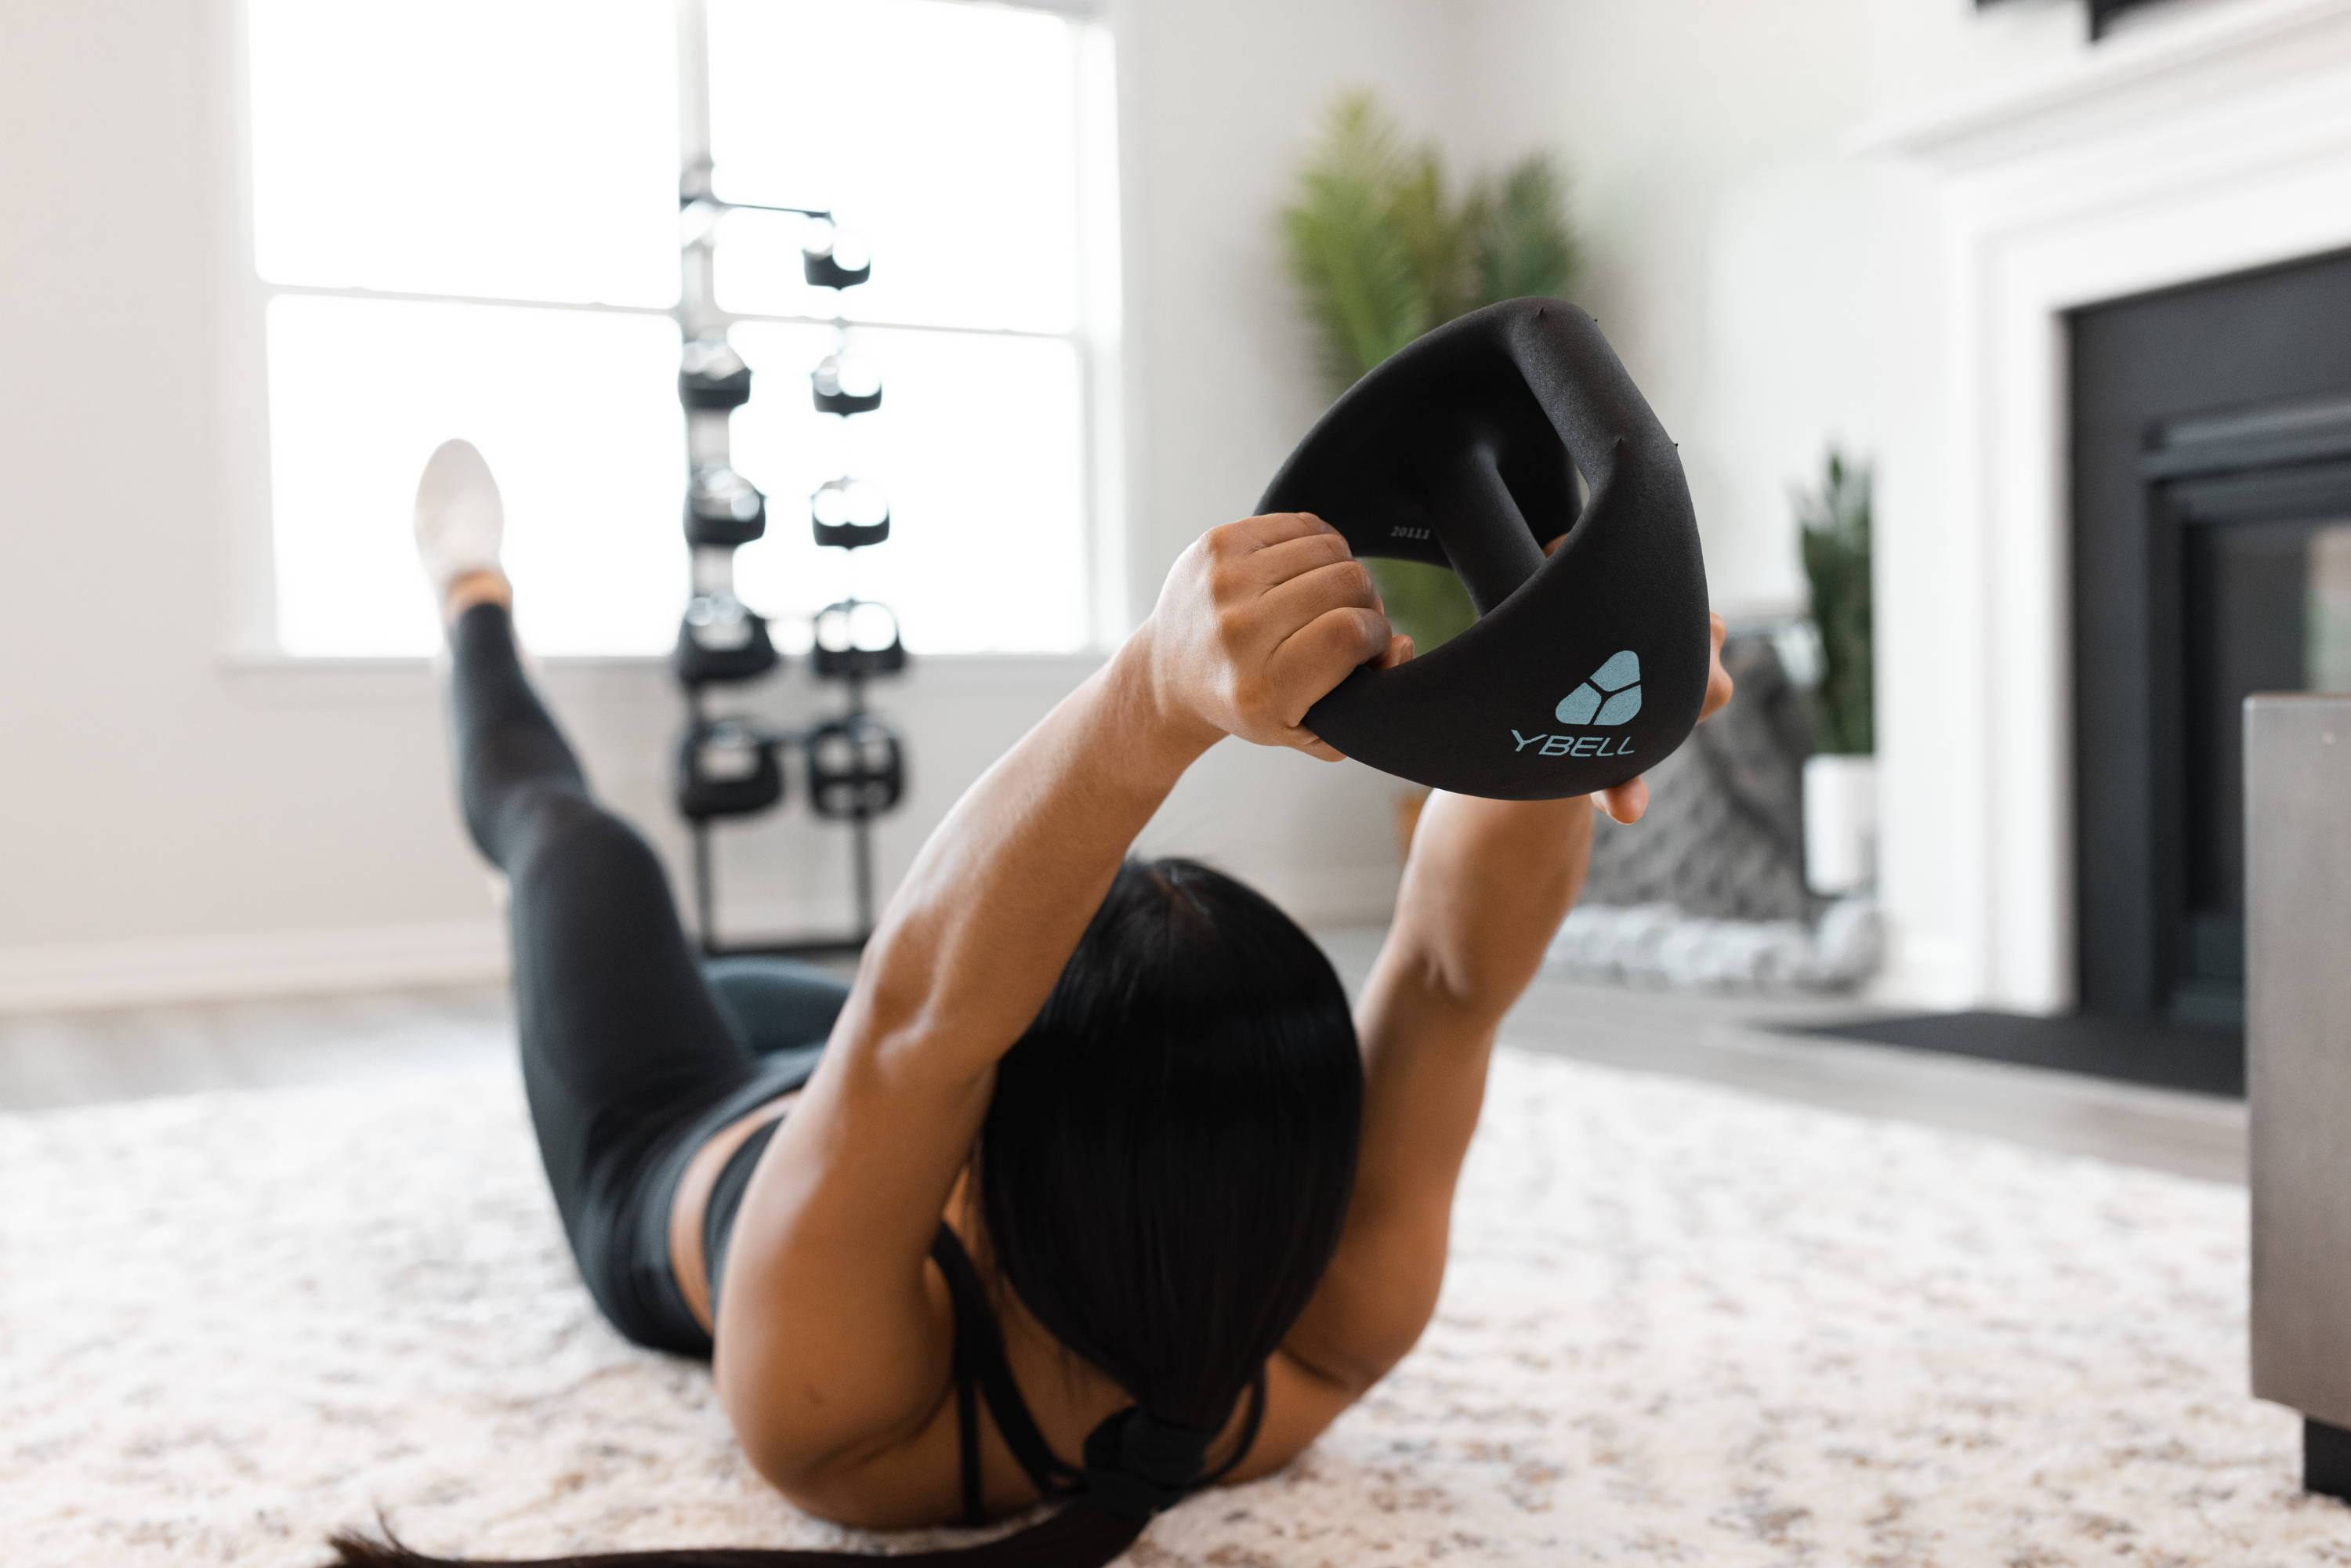 A female athlete works out with YBells in her home gym.